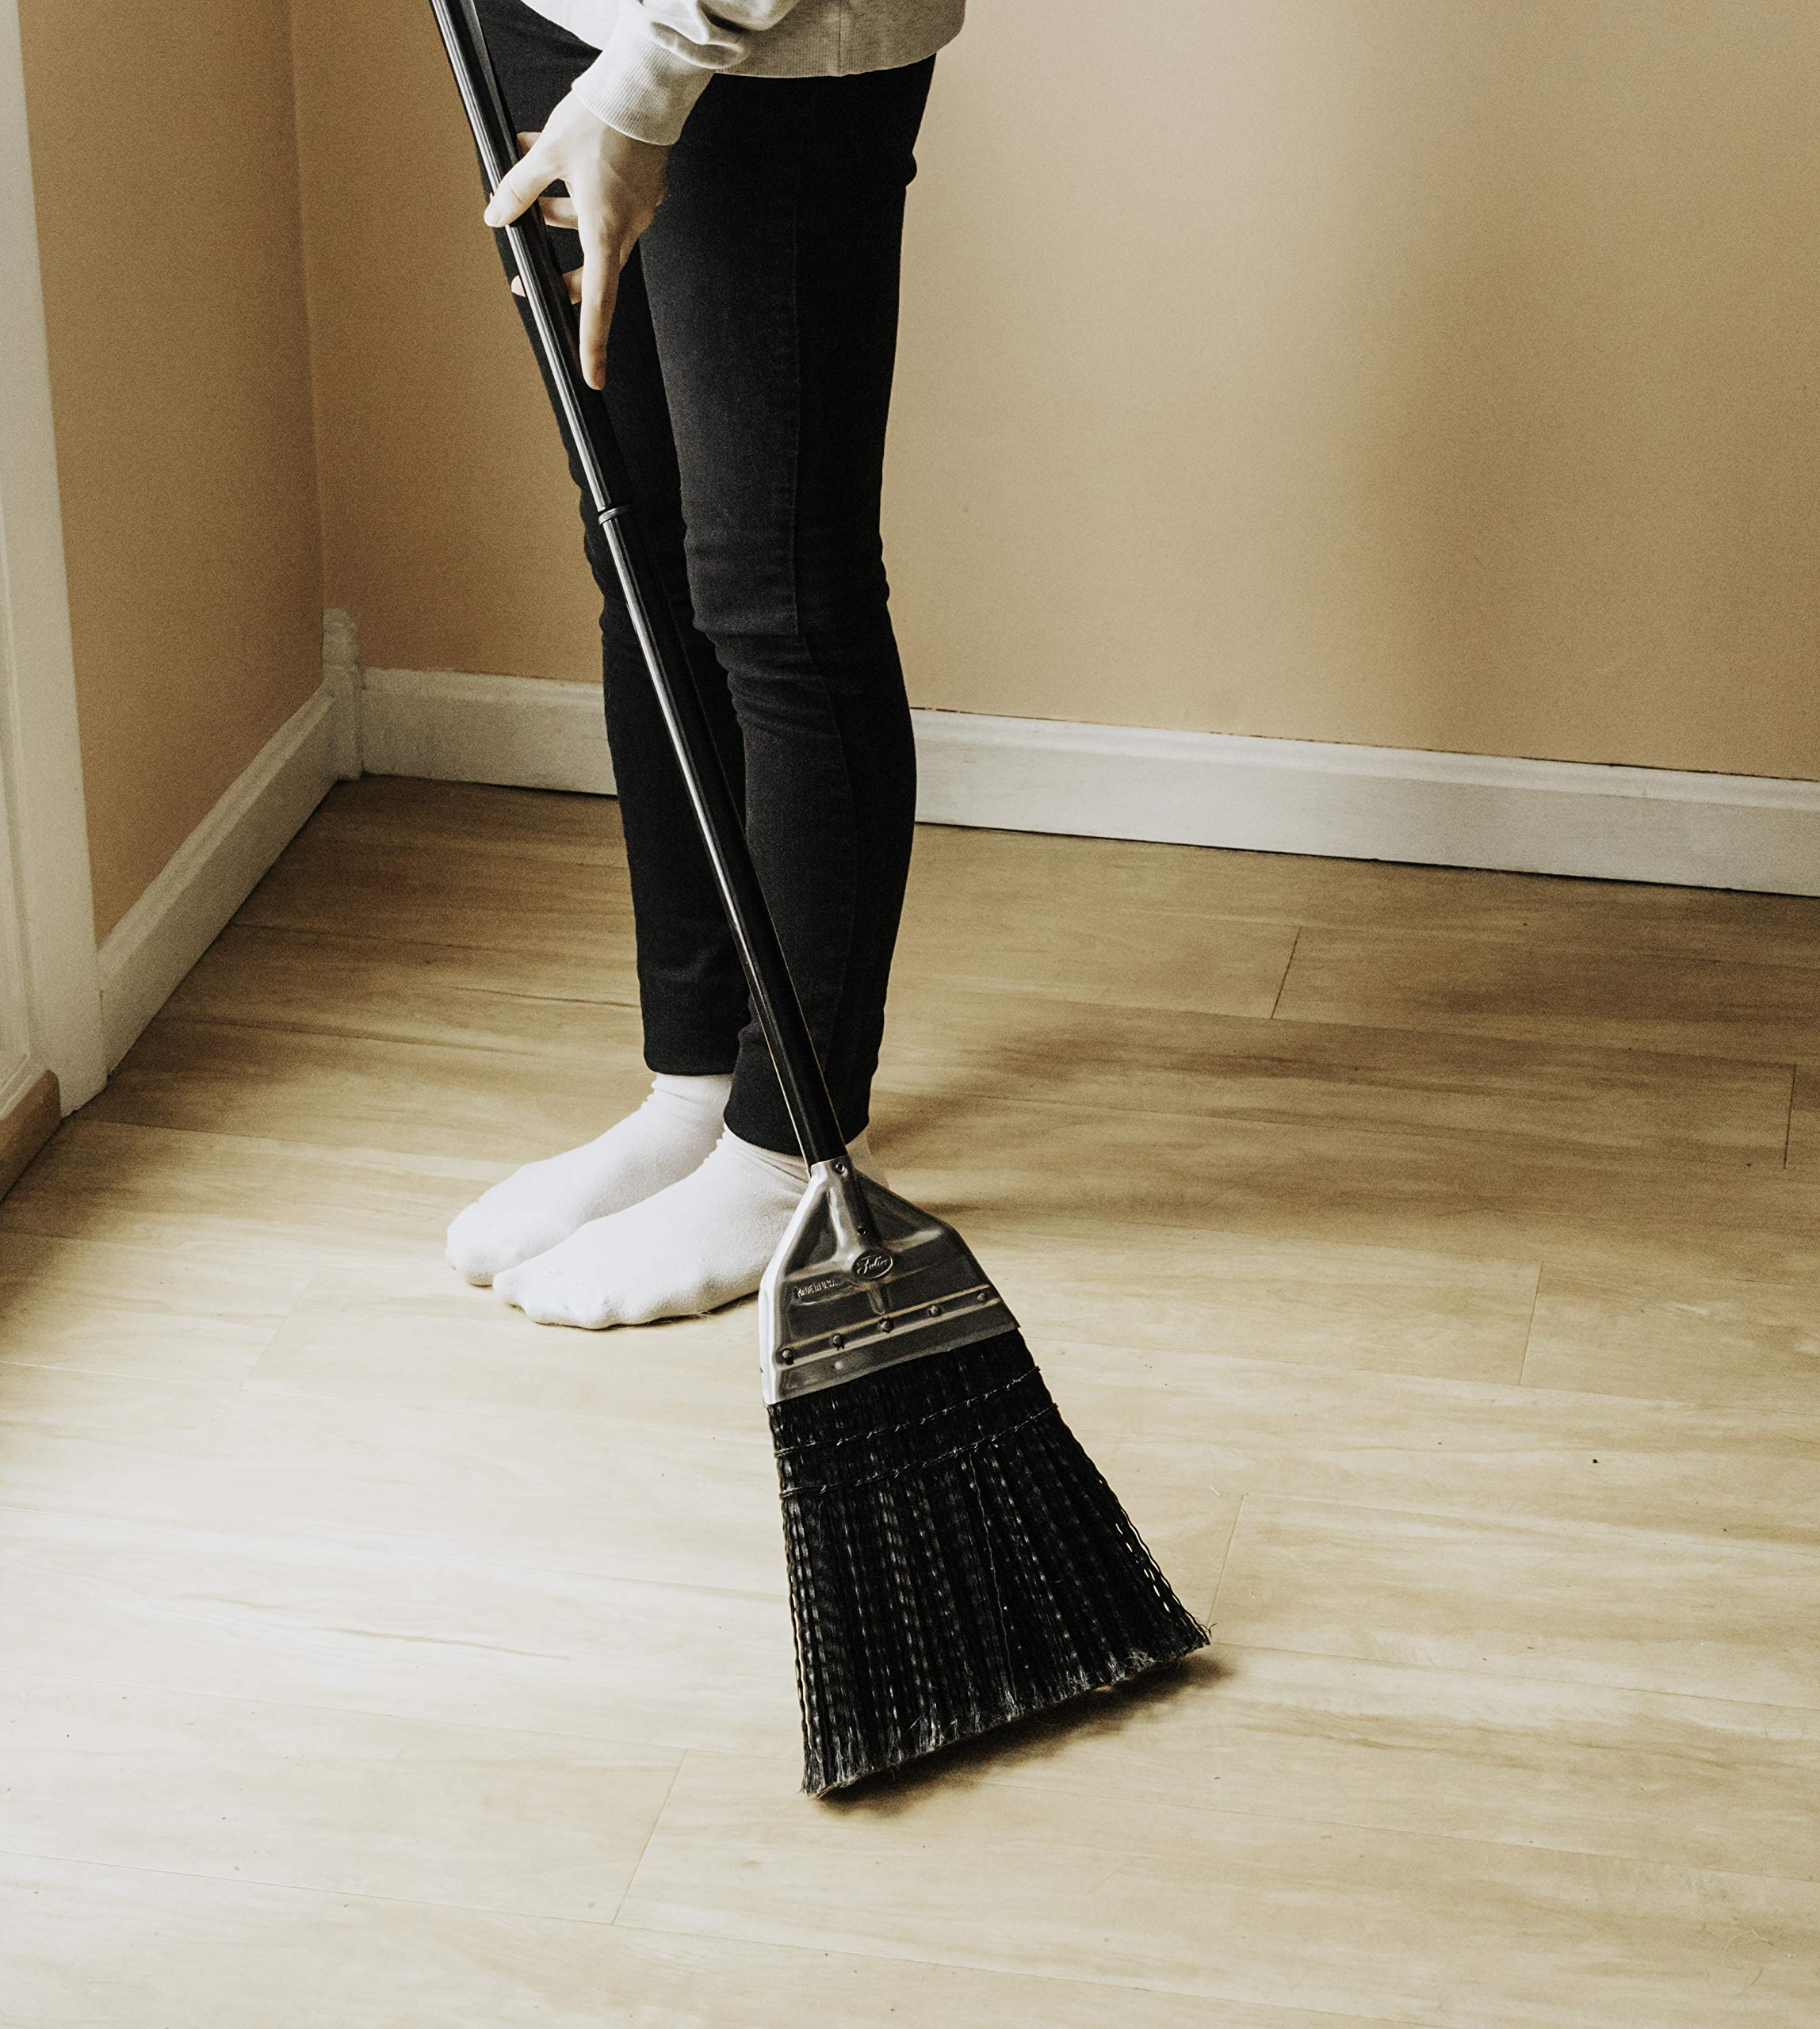 Fuller Brush Broom - Premium Grade Heavy Duty Straight Surface Sweeper w/ Chemical & Grease Proof Bristles For Sweeping All Floor Types Indoor & Outdoor by Fuller Brush (Image #2)